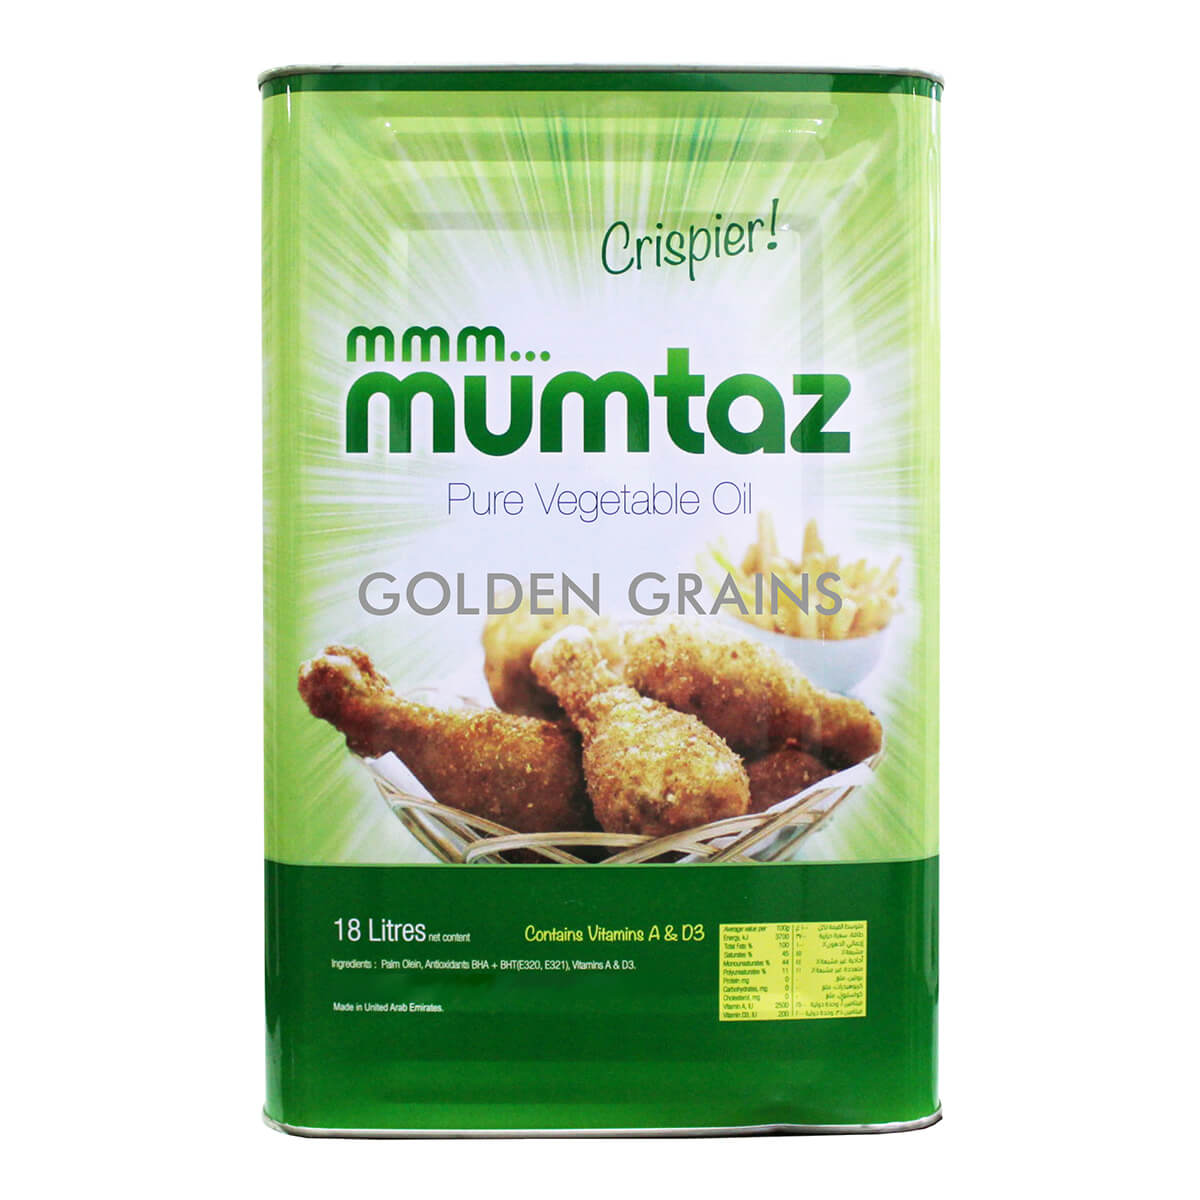 Golden Grains - Mumtaz - Vegetable Oil - Front.jpg